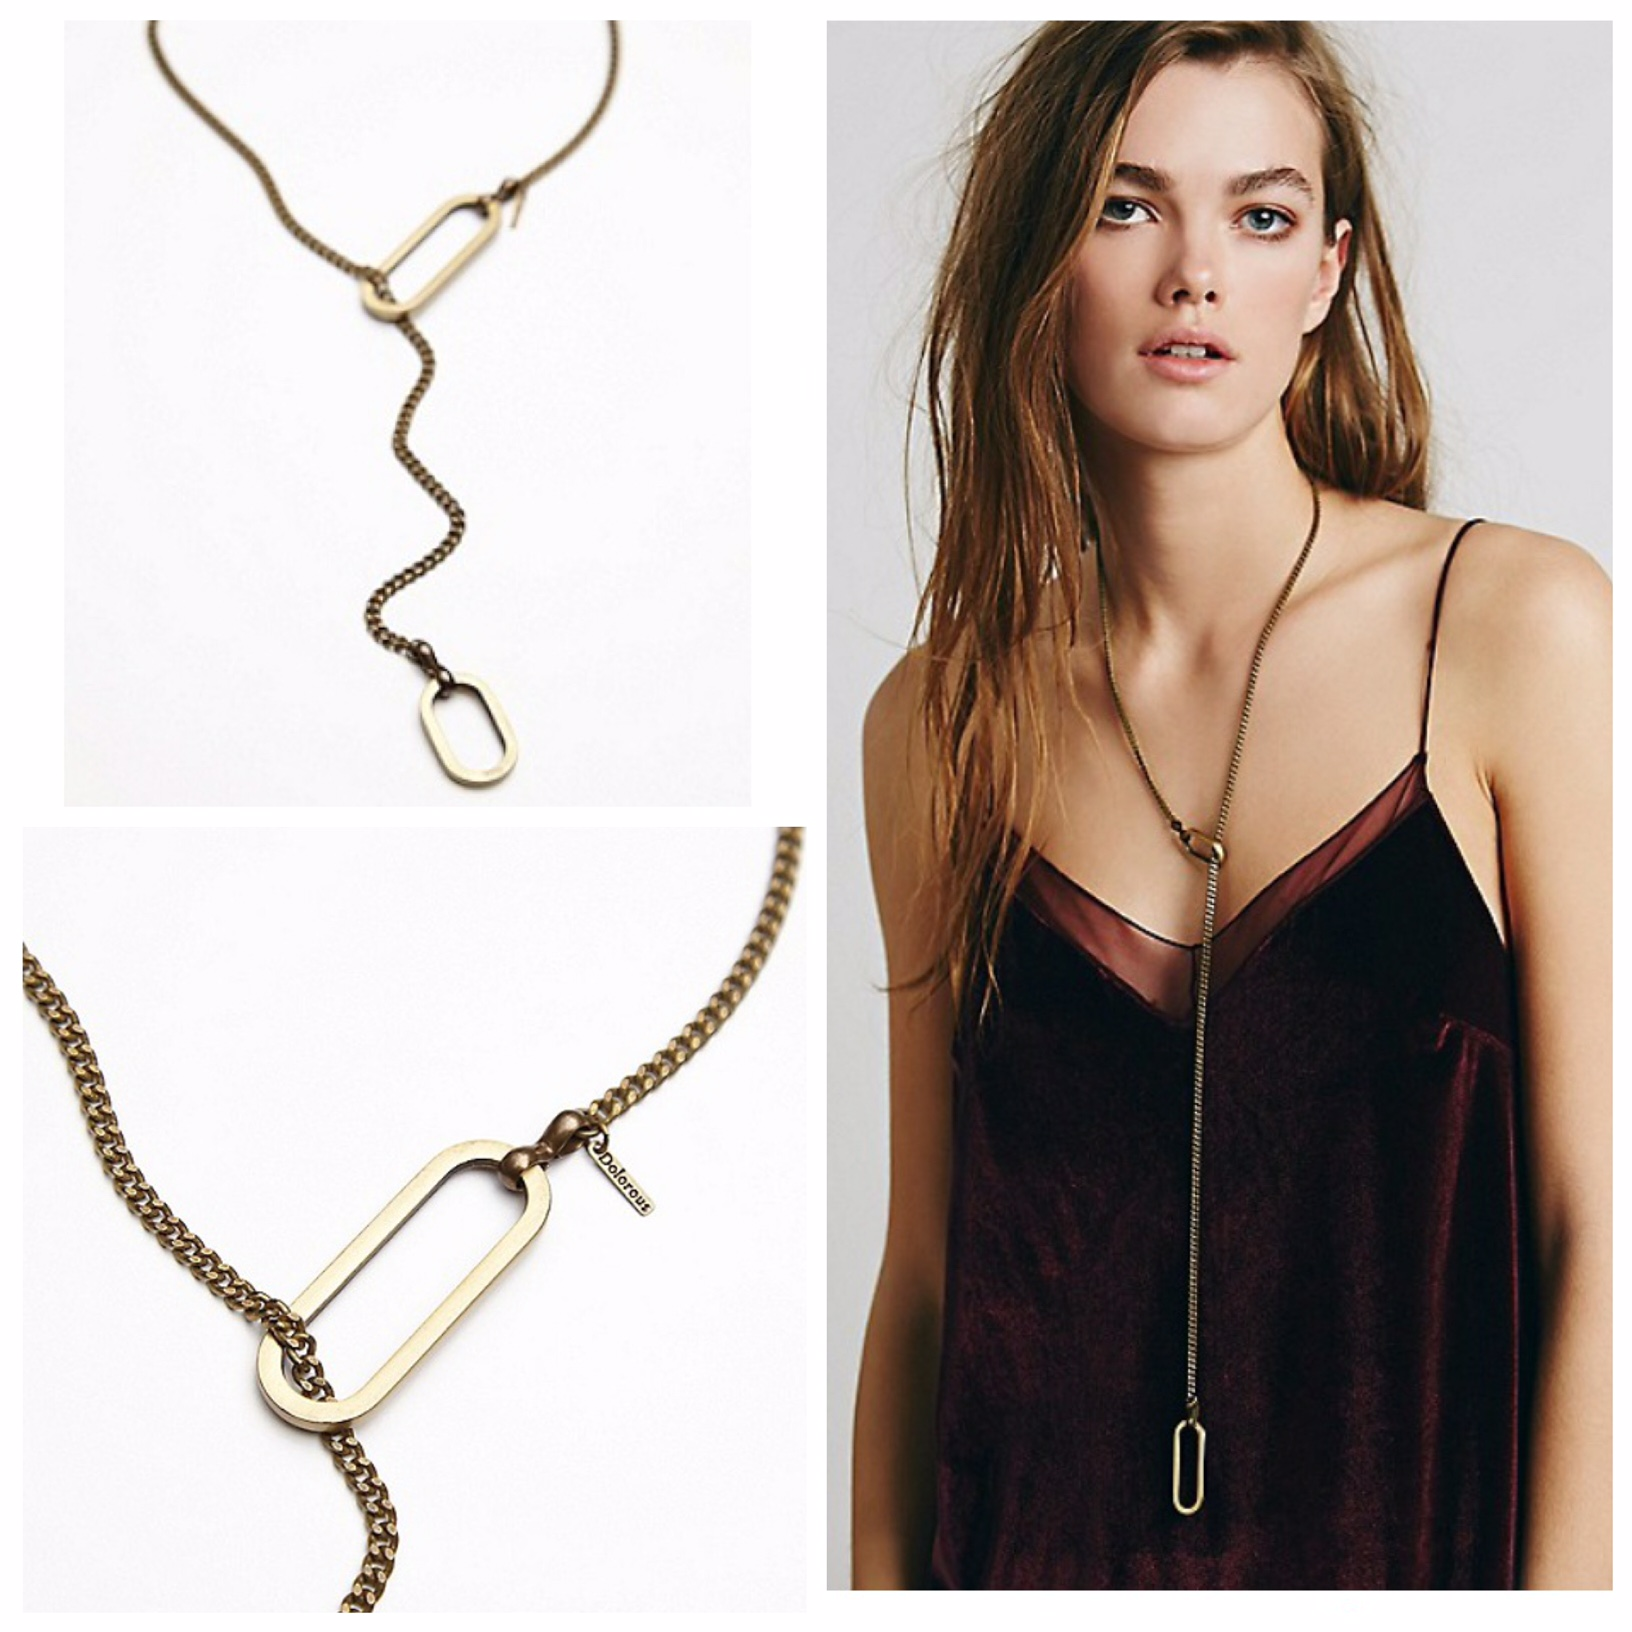 Dolorous Jewelry Ida Lariat now available at www.FreePeople.com and Free People locations across the USA